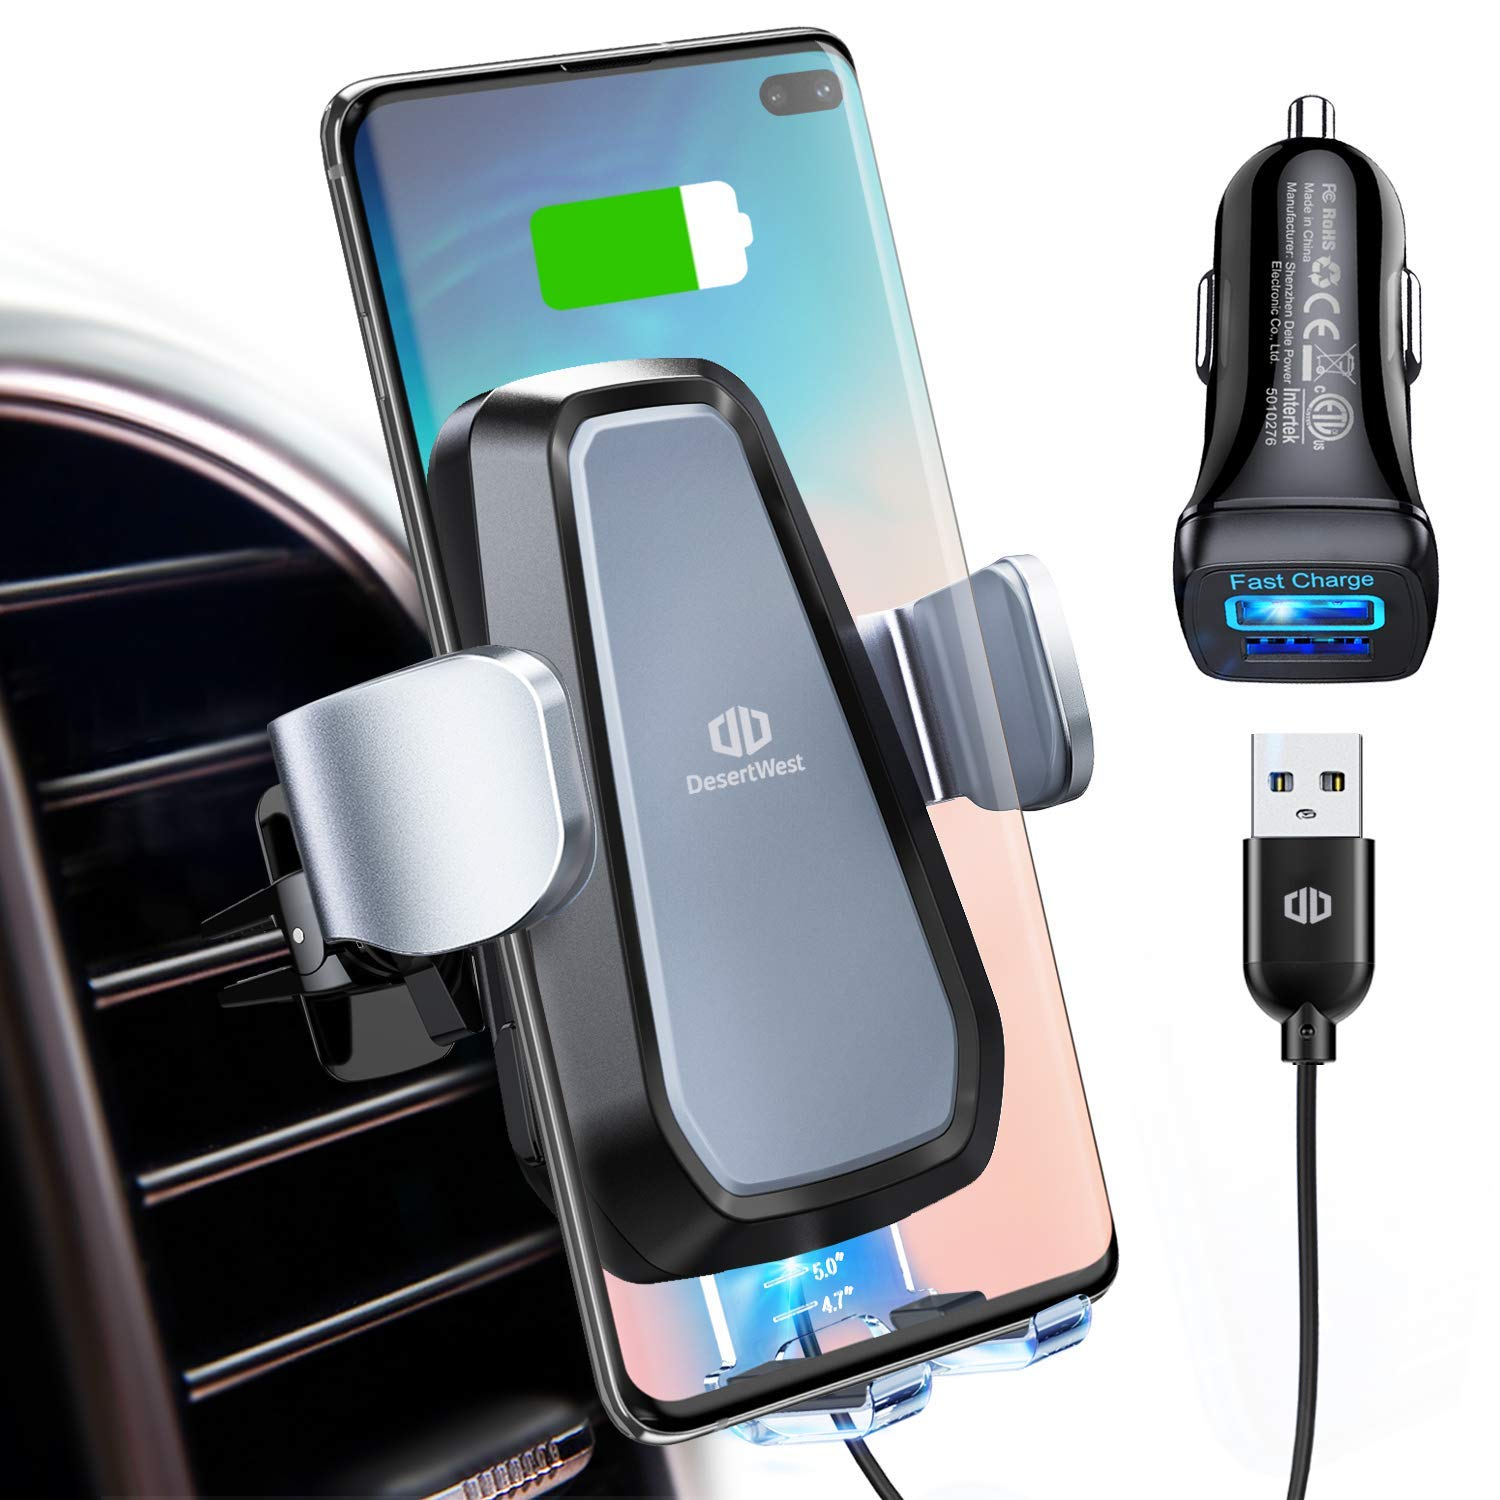 DesertWest Wireless Car Charger Mount, Air Vent Phone Holder 10W Qi Fast Charging Compatible with iPhone Xs Max/XR/X /8 Plus /8, Galaxy S10/S10+/S10e/S9+/S9, and Other Qi-Enabled Phones